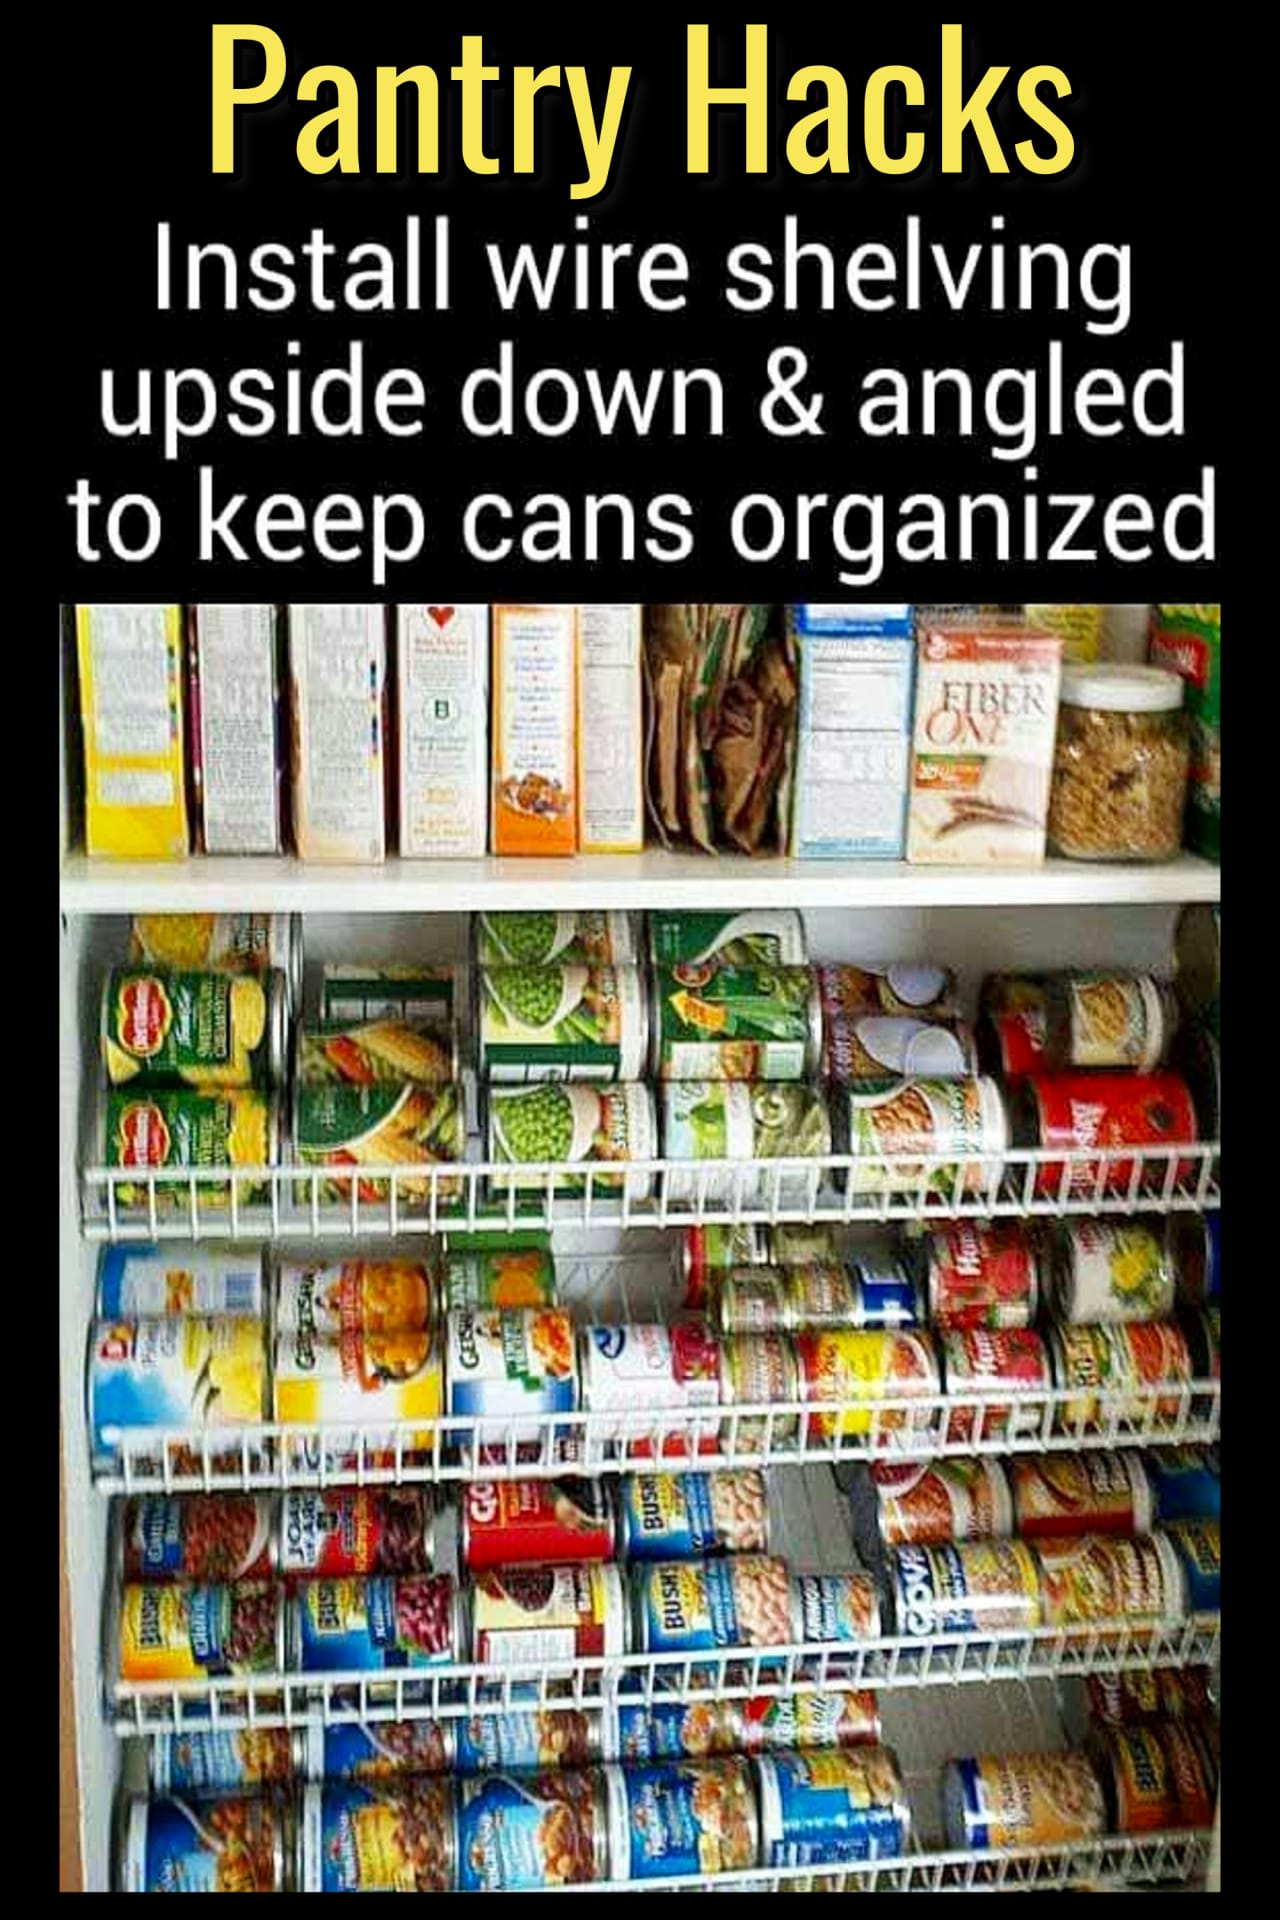 Declutter Your Pantry - Organize Your Pantry in 3 Simple Steps - Decluttering Your Life #pantryorganization Pantry Organization Ideas - Pantry Shelves Organization Hack for Better Food Storage - how to organize canned goods in our pantry - Pantry Shelving Ideas - Easy DIY wire shelving storage ideas for an organized pantry #pantryorganizationideas